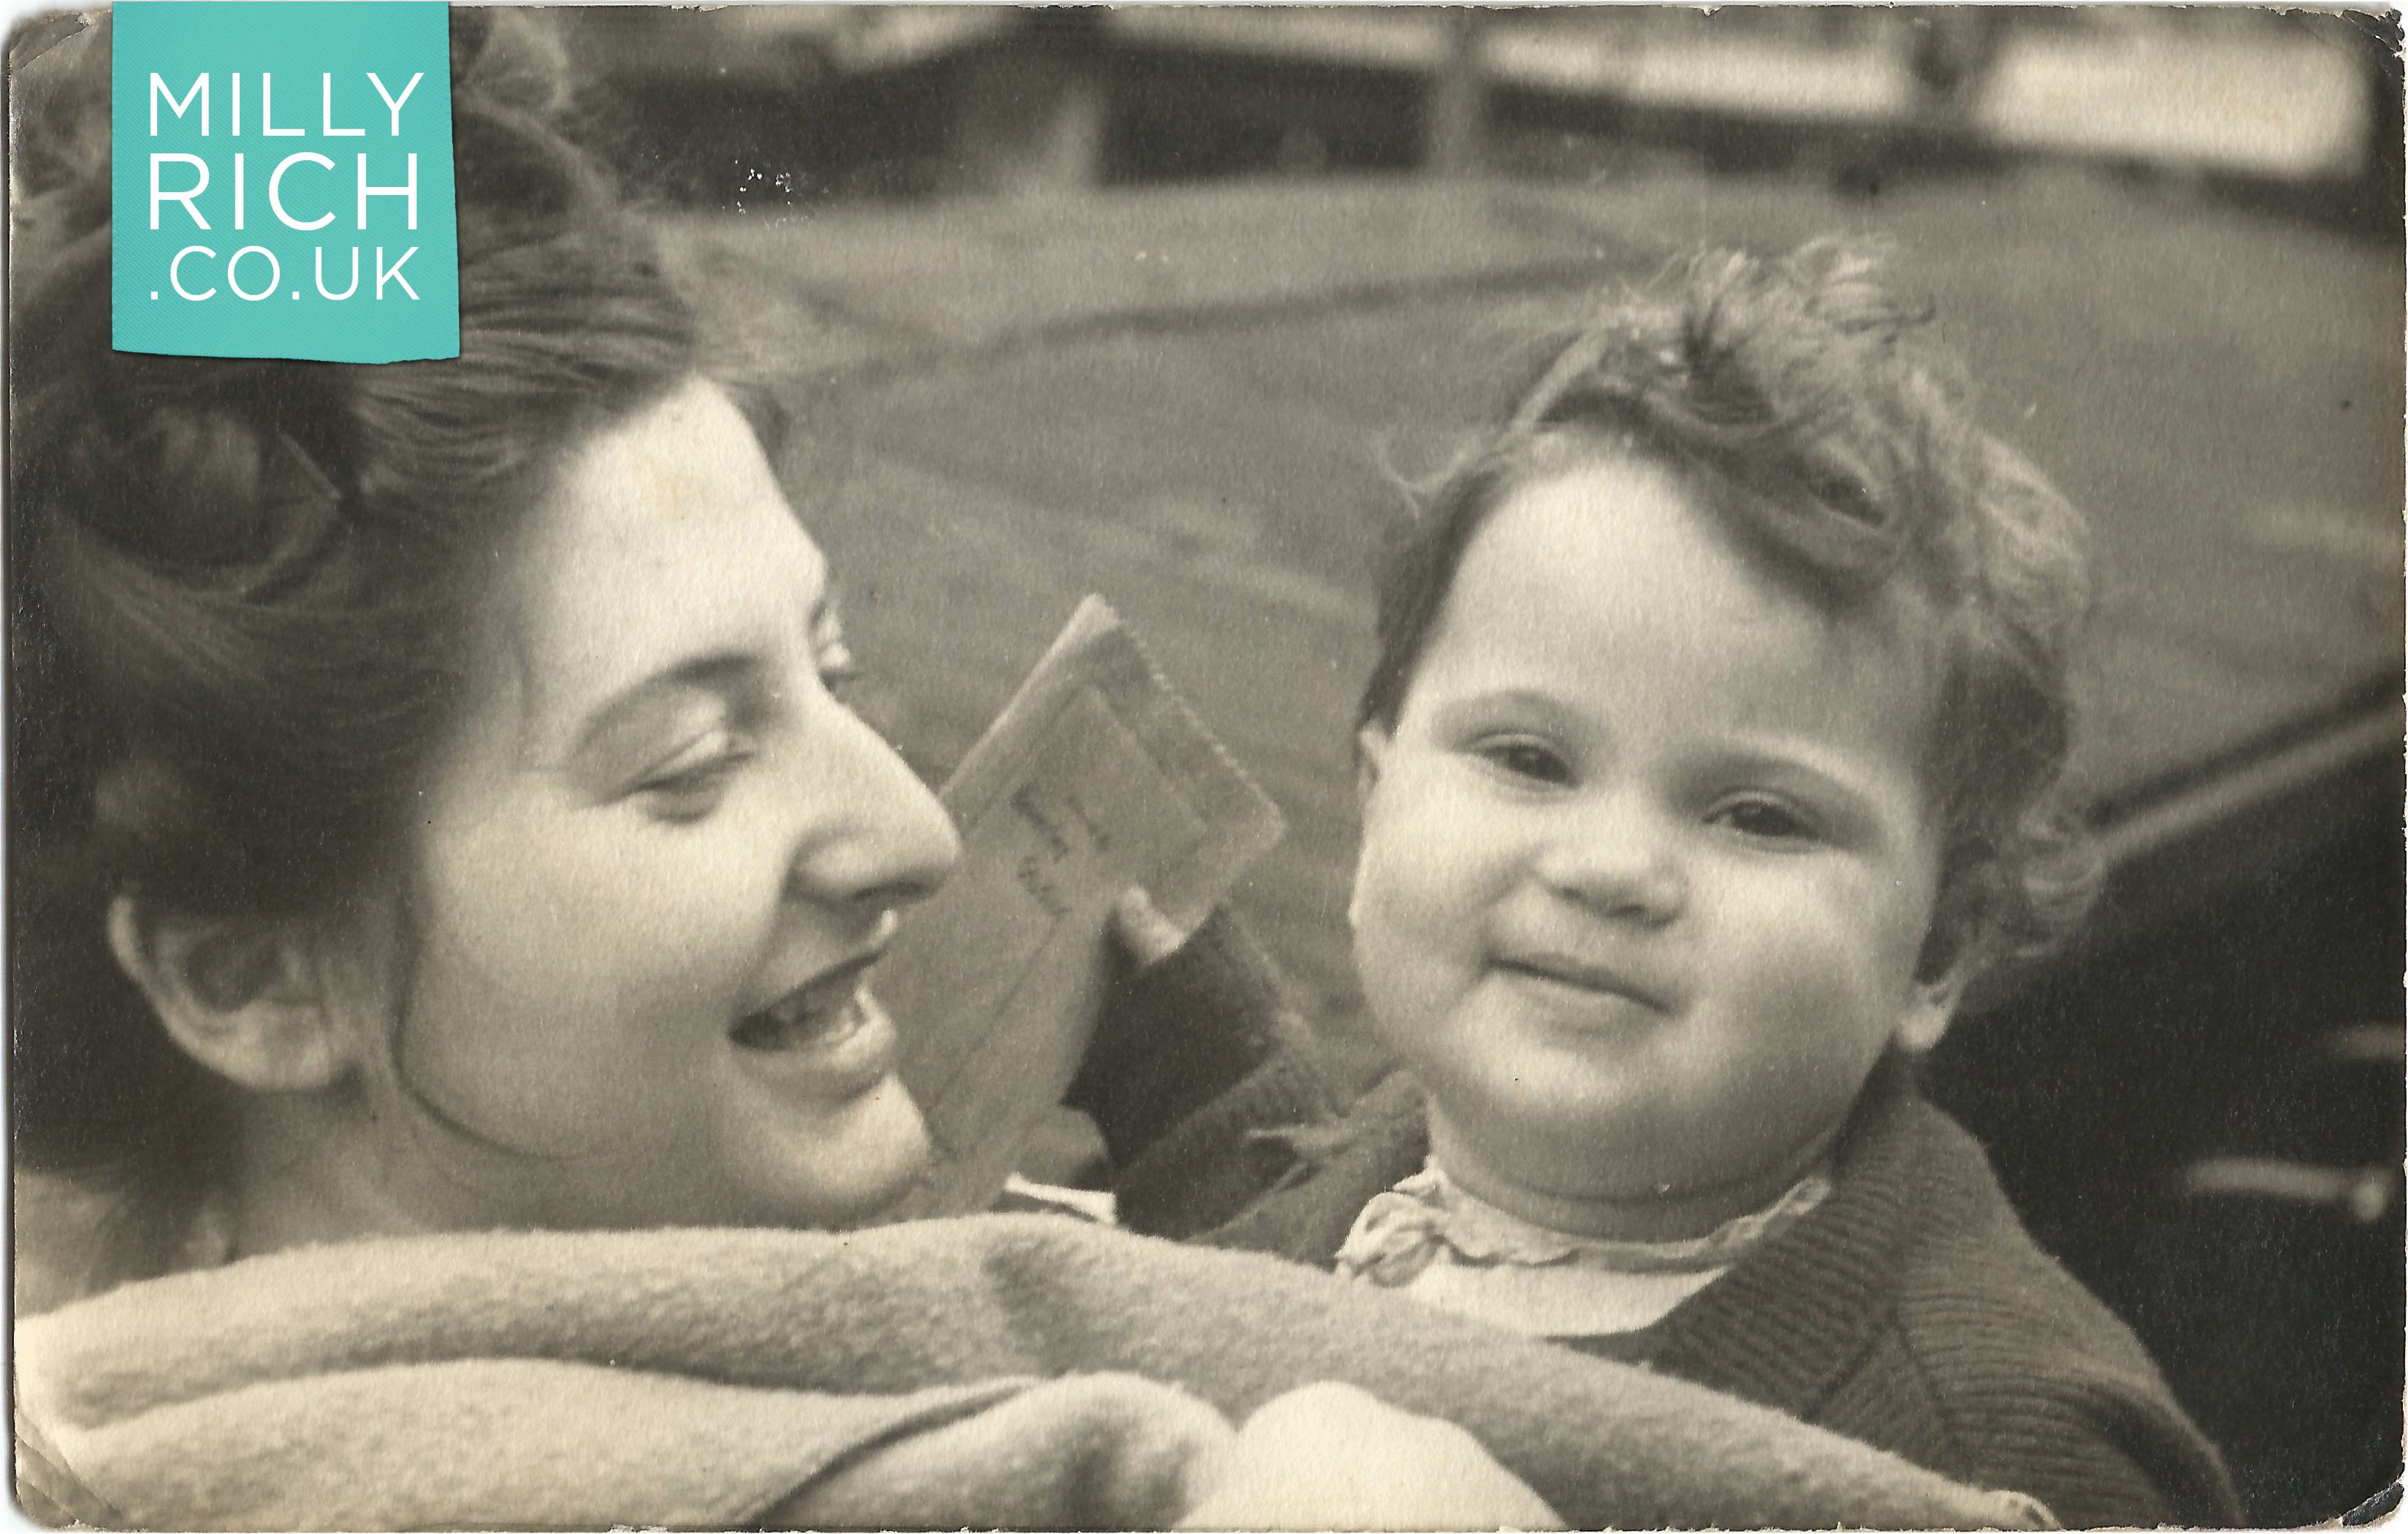 Milly and Shula Rich 1948, Balham, London